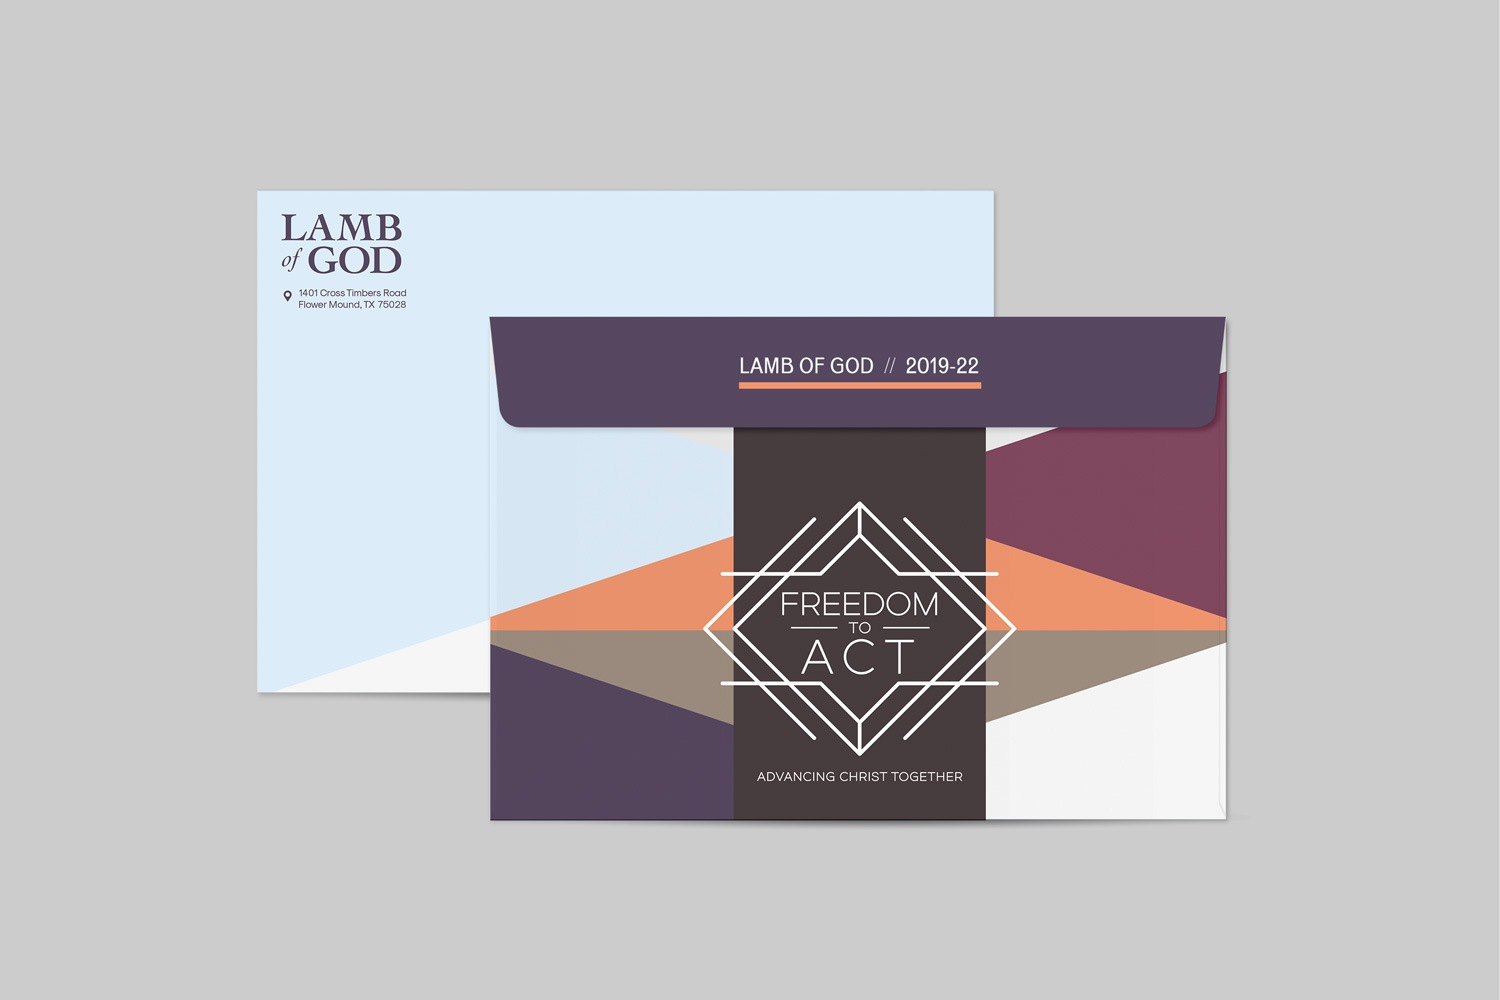 6.5x9.5in envelope for church capital campaign packages and materials for fundraising by abstract union